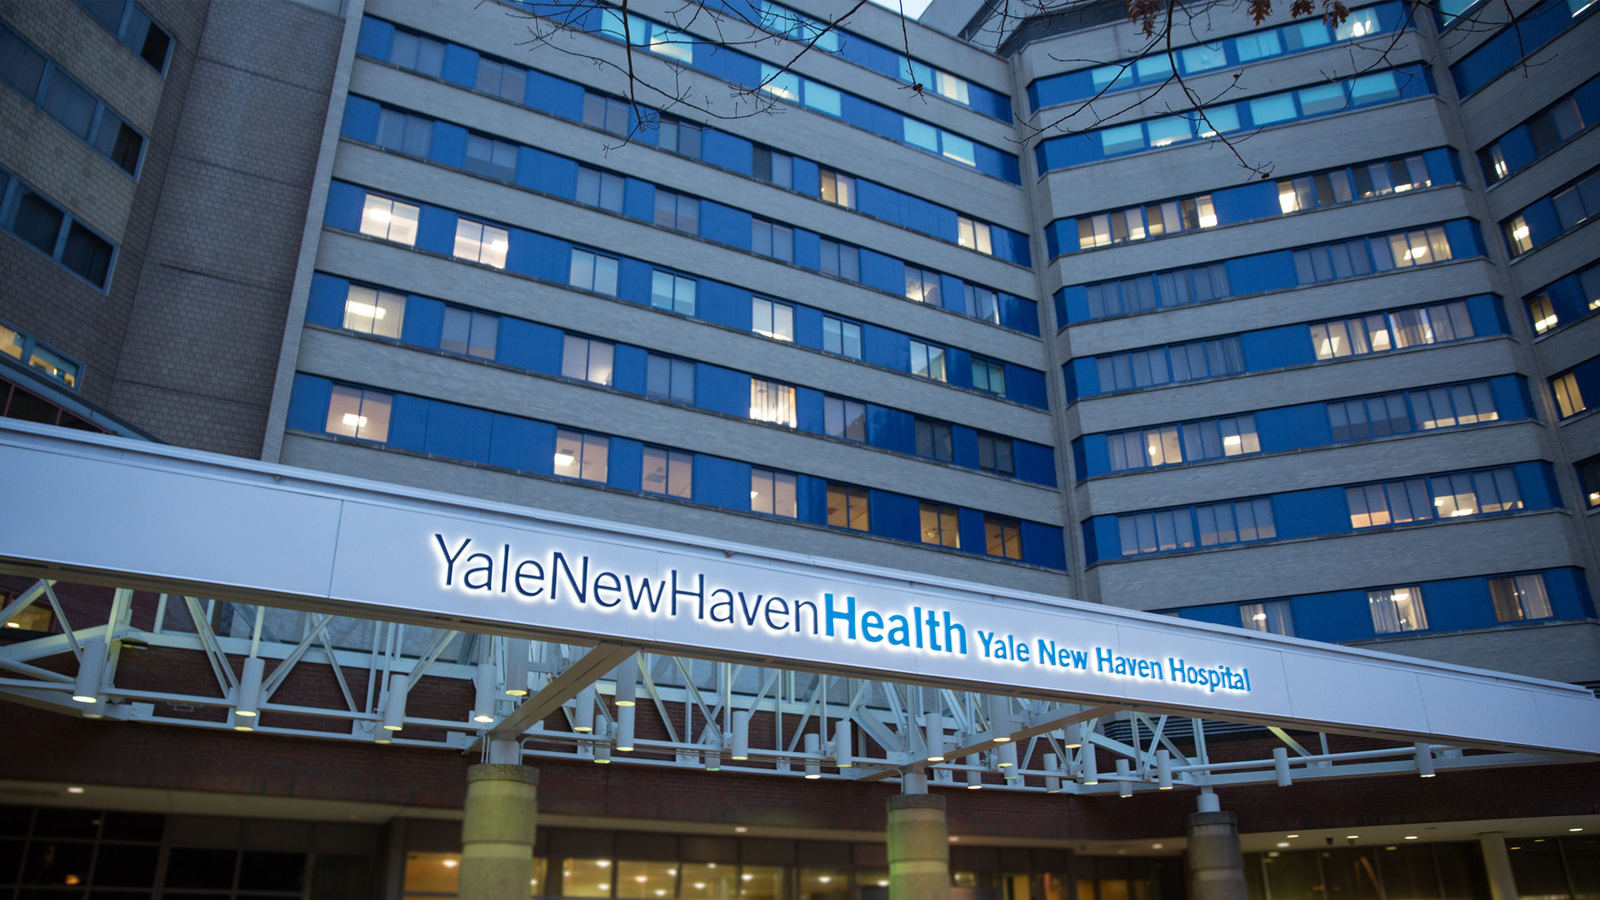 Yale New Haven Health Case Study: e-Builder & Enstoa come together to provide value for health care clients